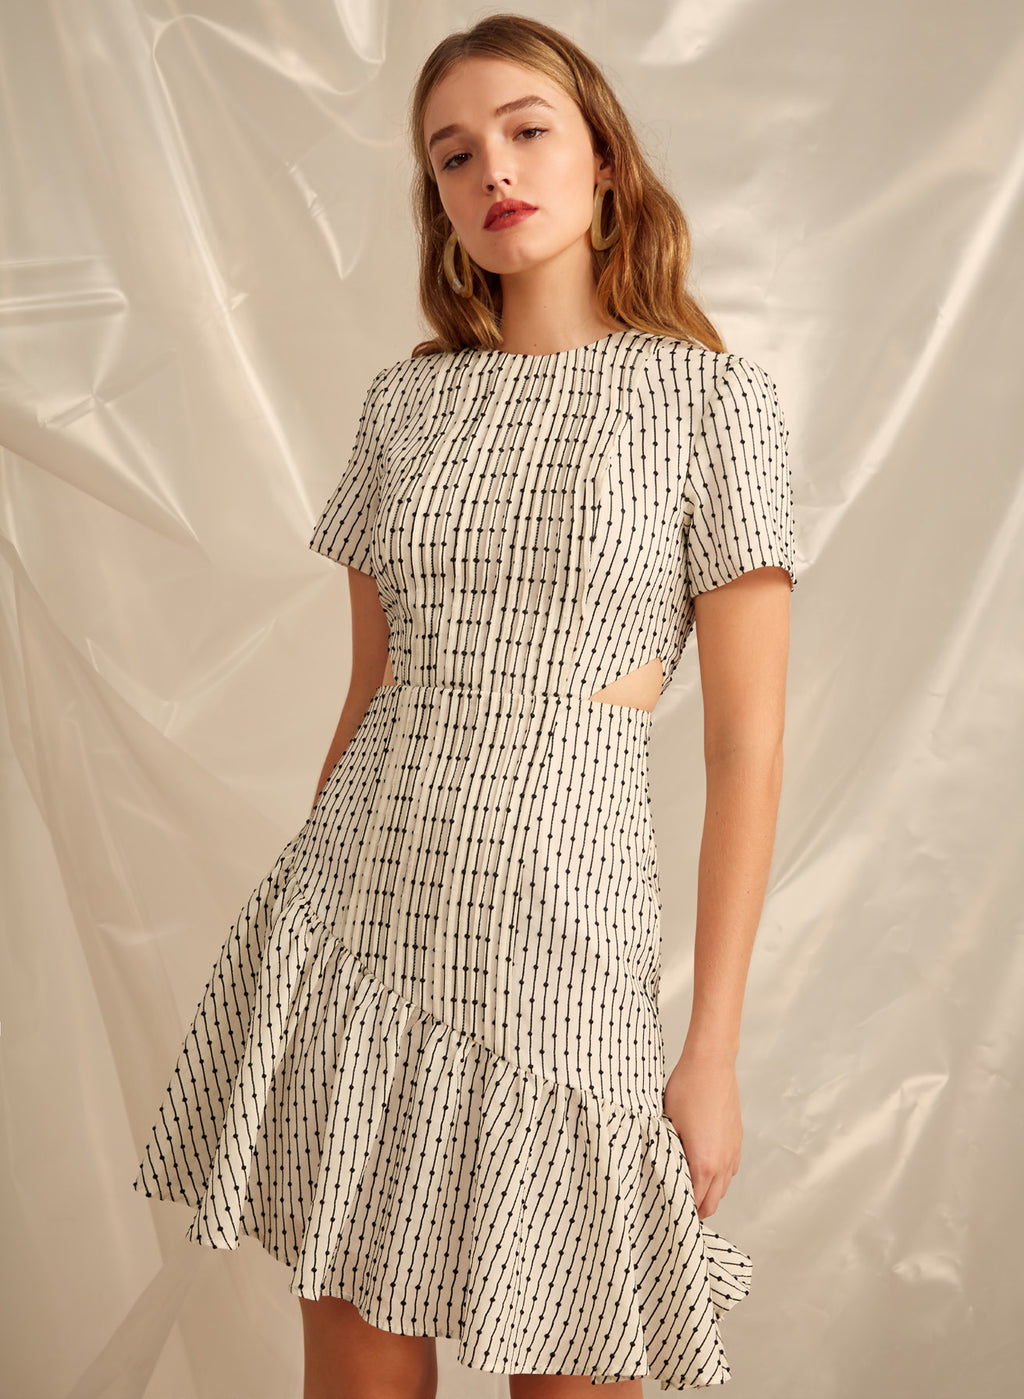 Even Love Dress C/MEO COLLECTIVE